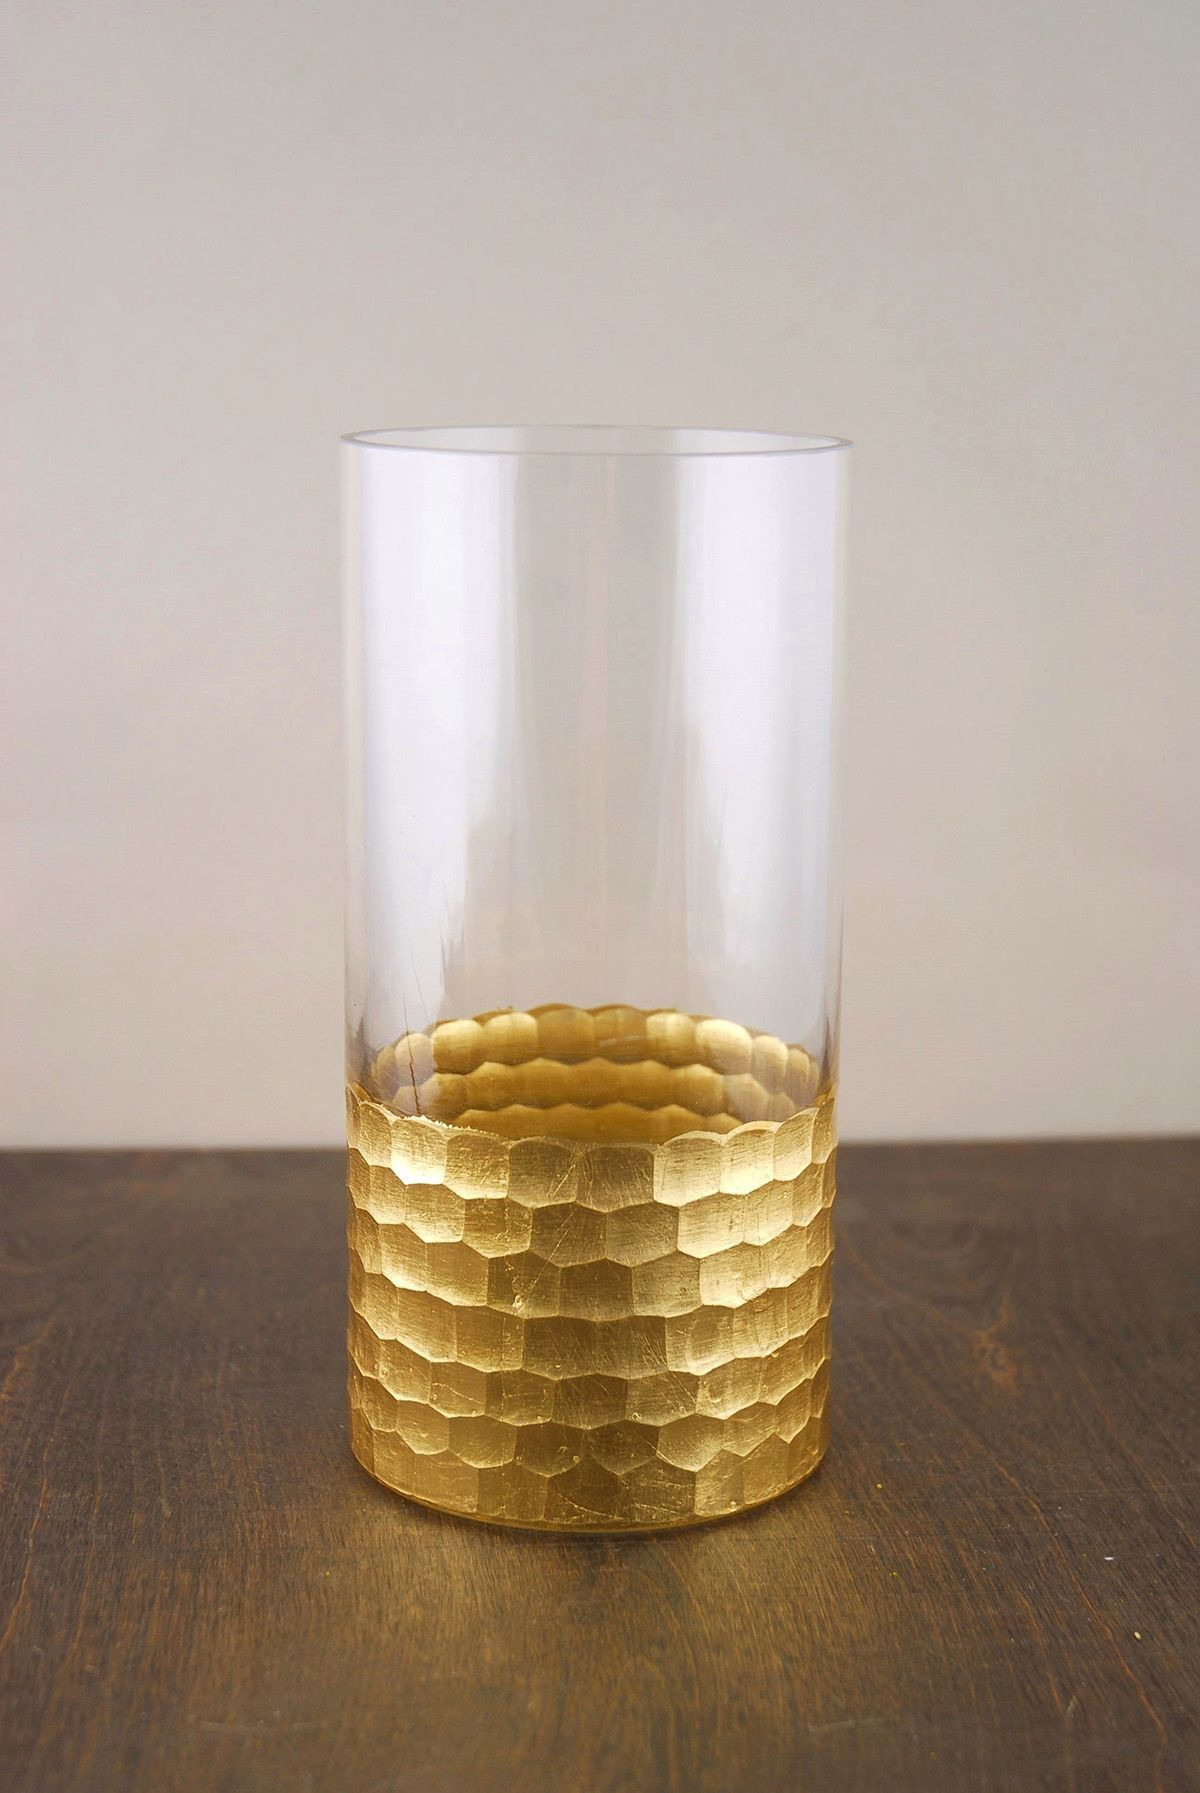 cylinder floor vase of gold mercury glass vases inspirational gold cylinder vases within gold mercury glass vases inspirational gold cylinder vases collection silver and gold mercury glass mosaic